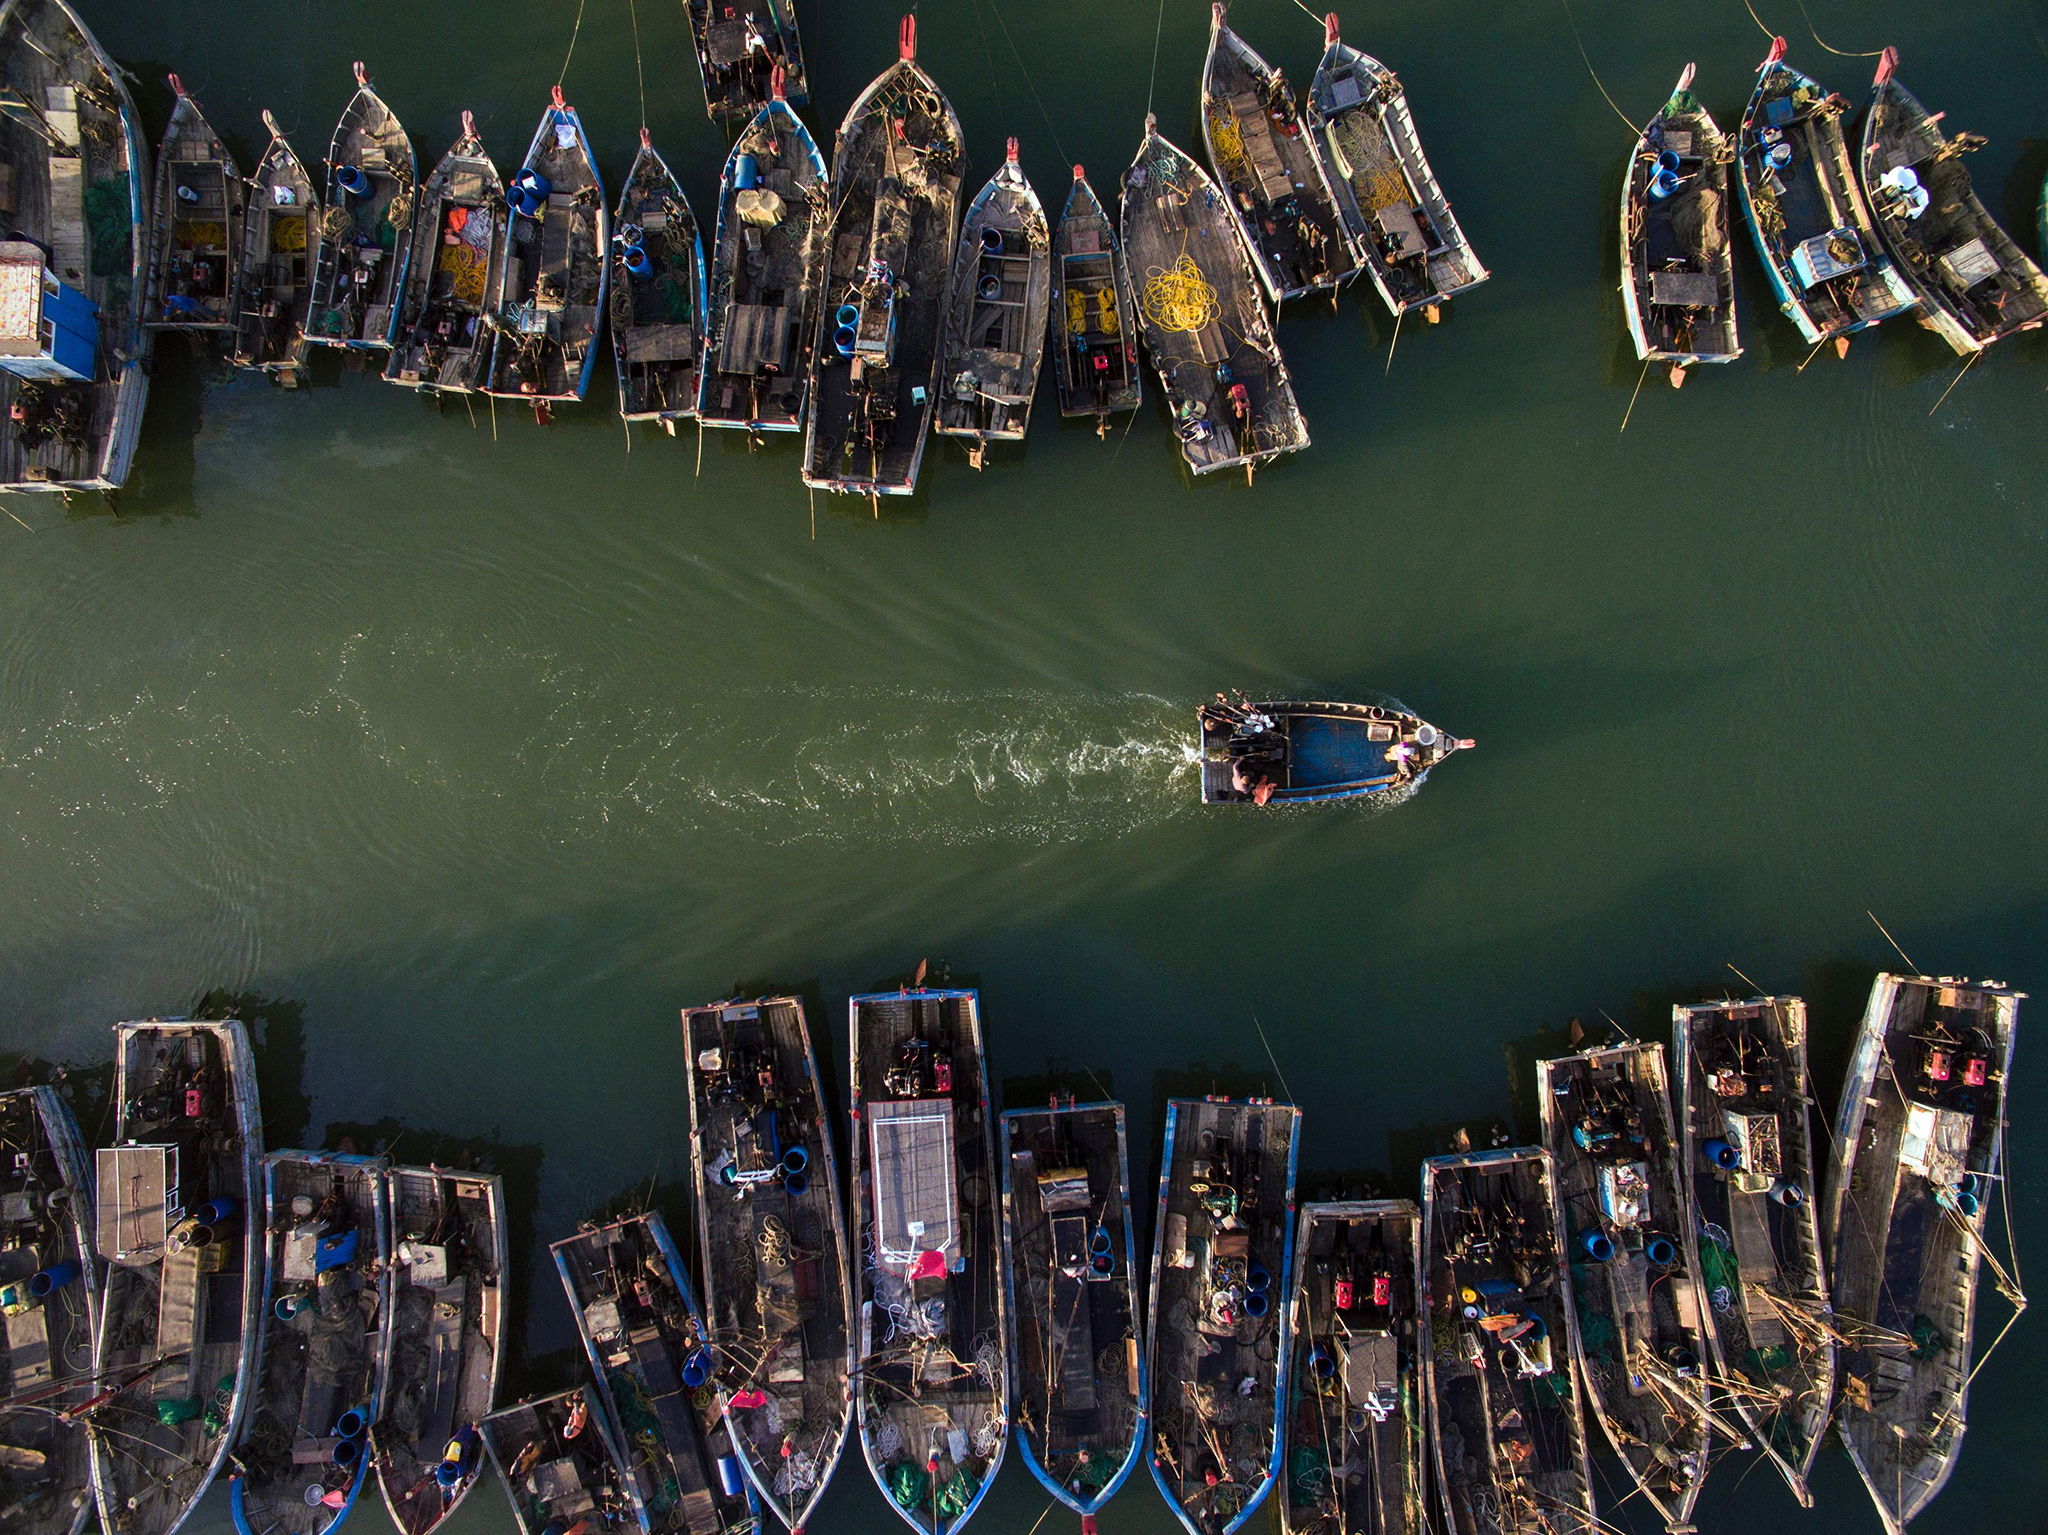 This picture taken on September 19, 2016 shows people onboard fishing boats heading out to sea in order to catch crabs, in Xianrendao in China's northeastern Liaoning province.